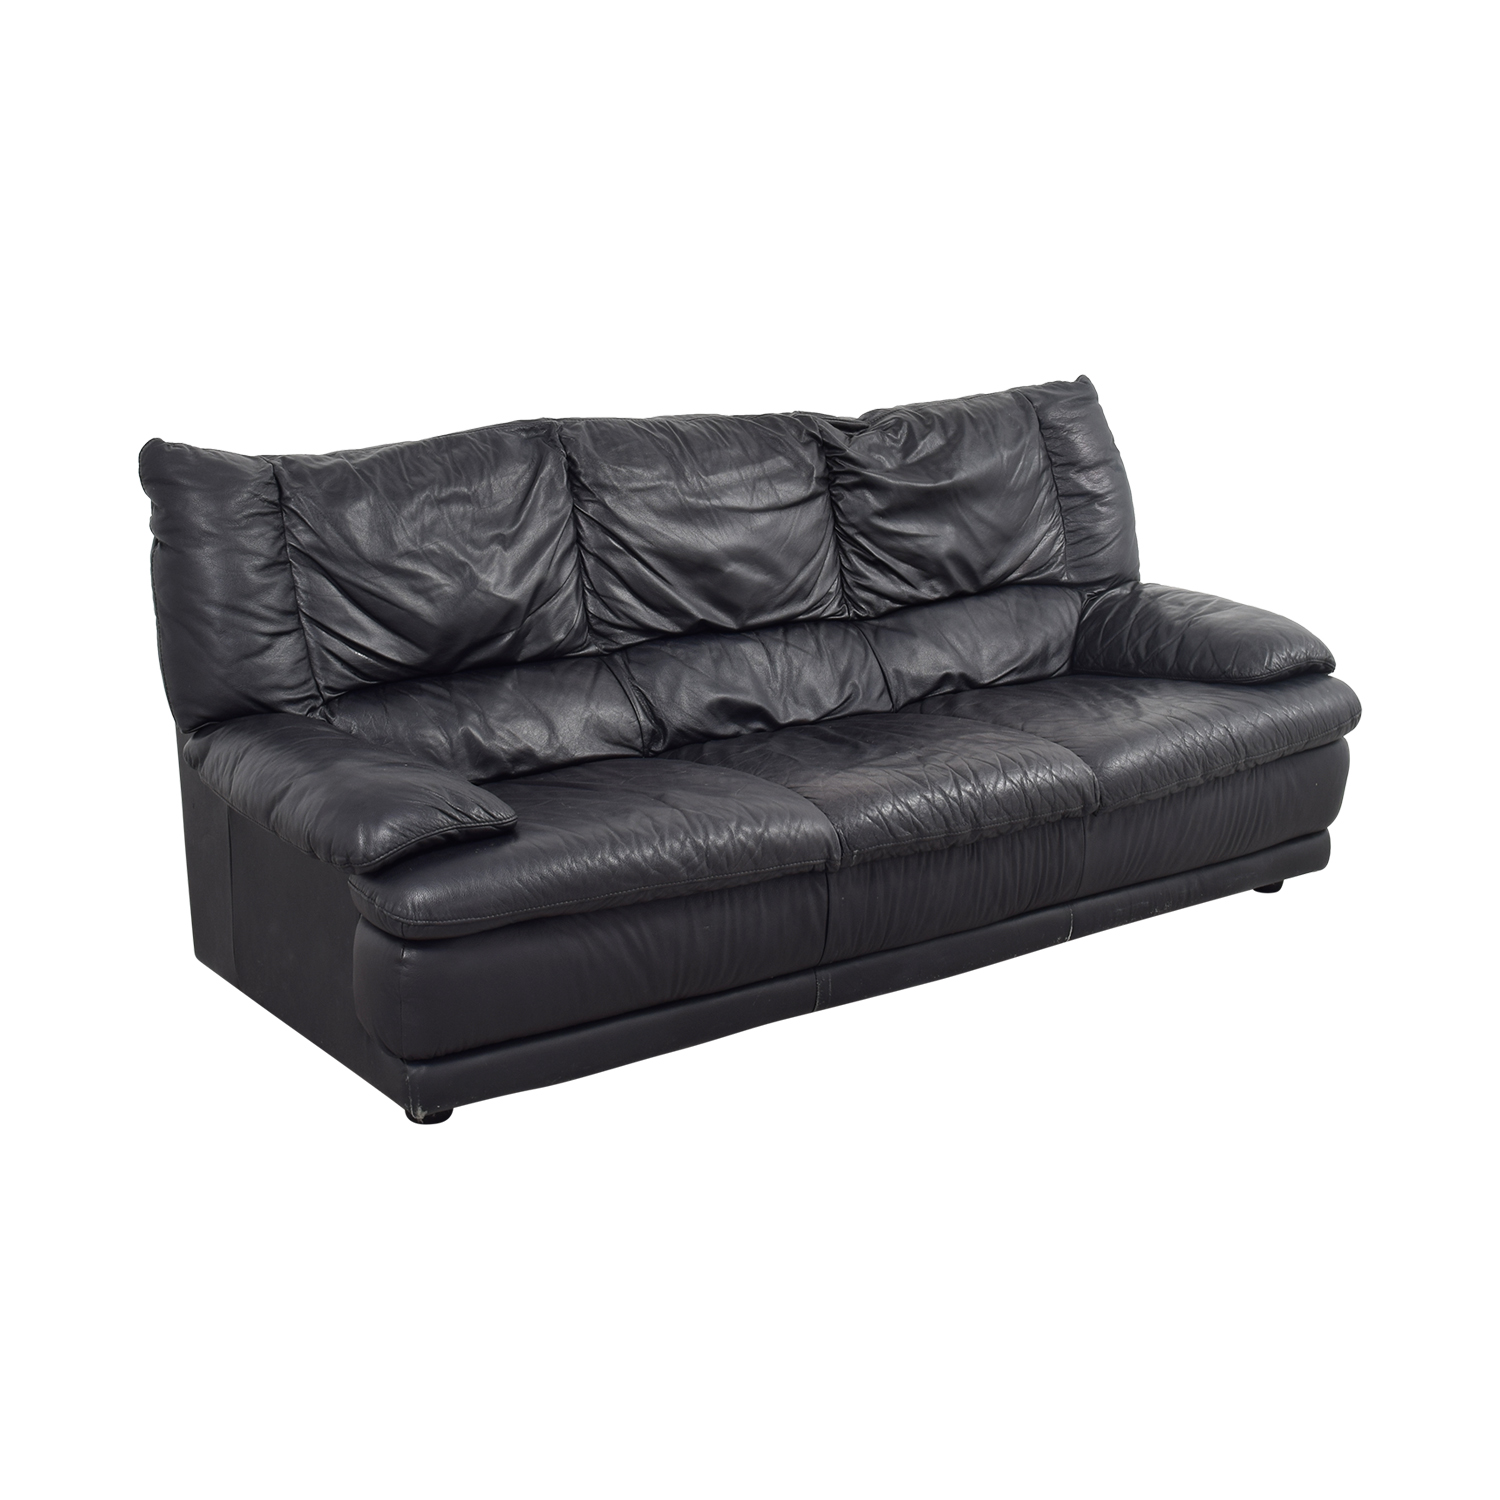 Ikea White Leather Couch Sofas: IKEA IKEA Black Leather Sofa / Sofas